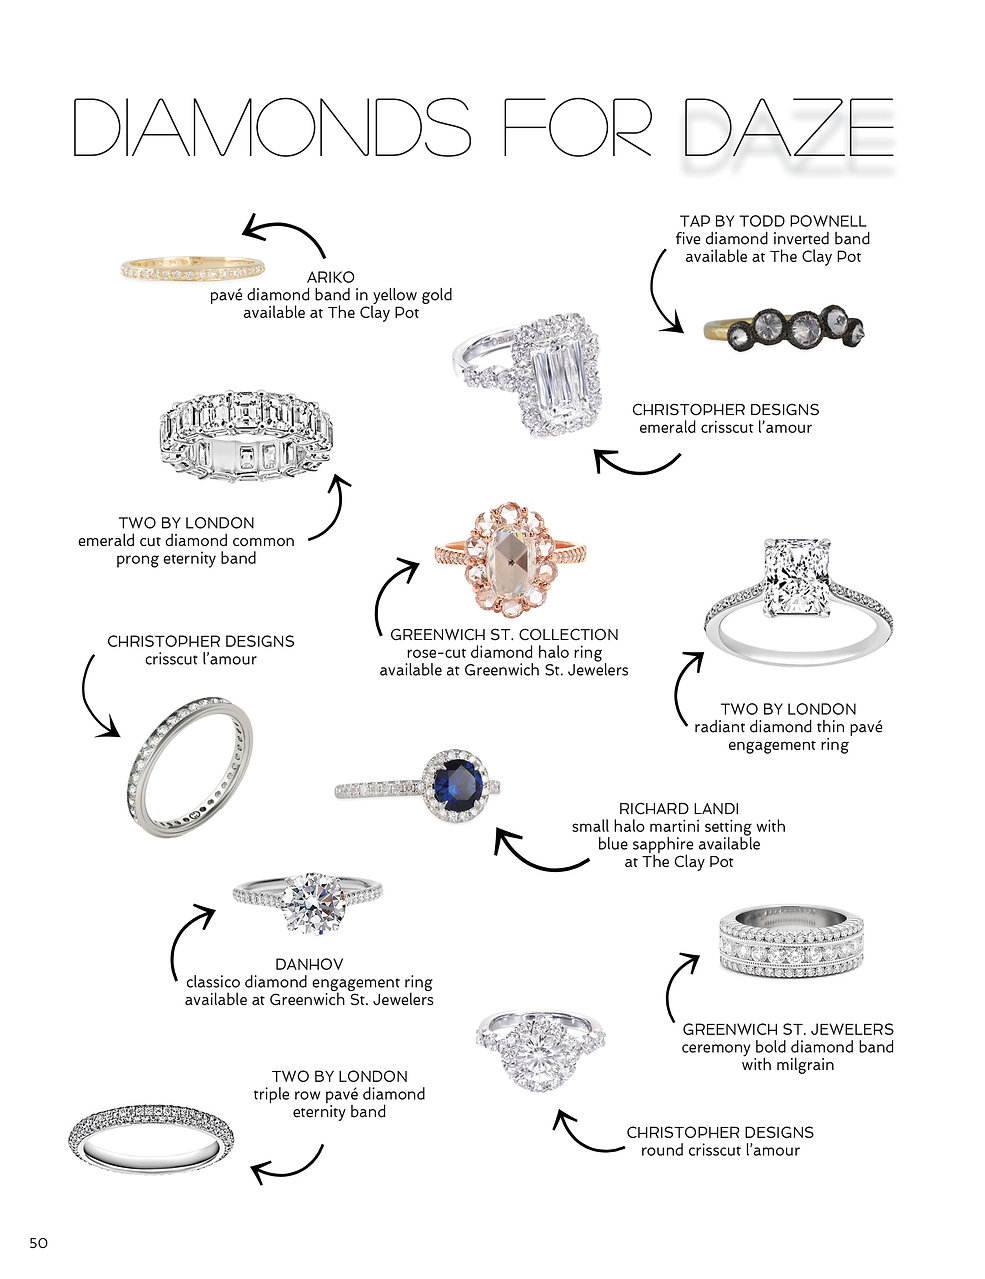 Sophisticated Weddings New York Diamonds For Daze Greenwich St Jewelers Christopher Designs Clay Pot Two By London